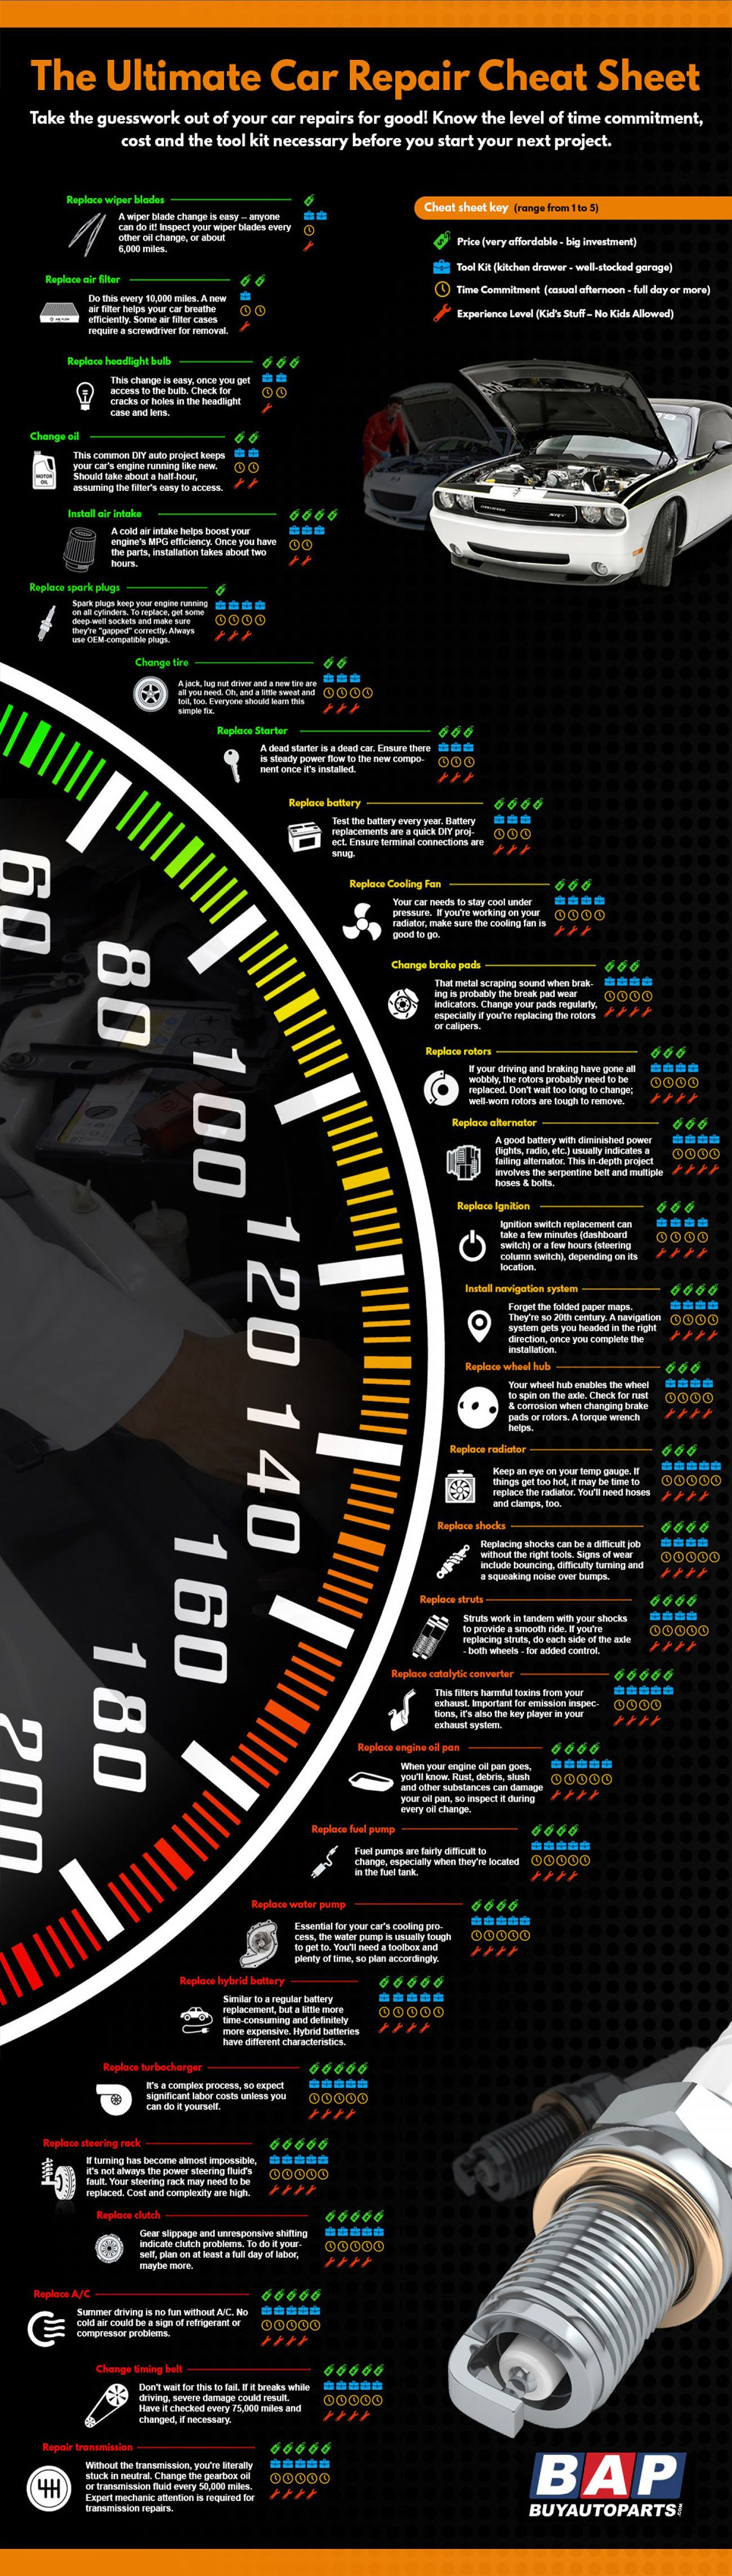 guide to auto replacement parts infographic infographic cars rh pinterest com car repair troubleshooting guide Mitchell Auto Repair Guide